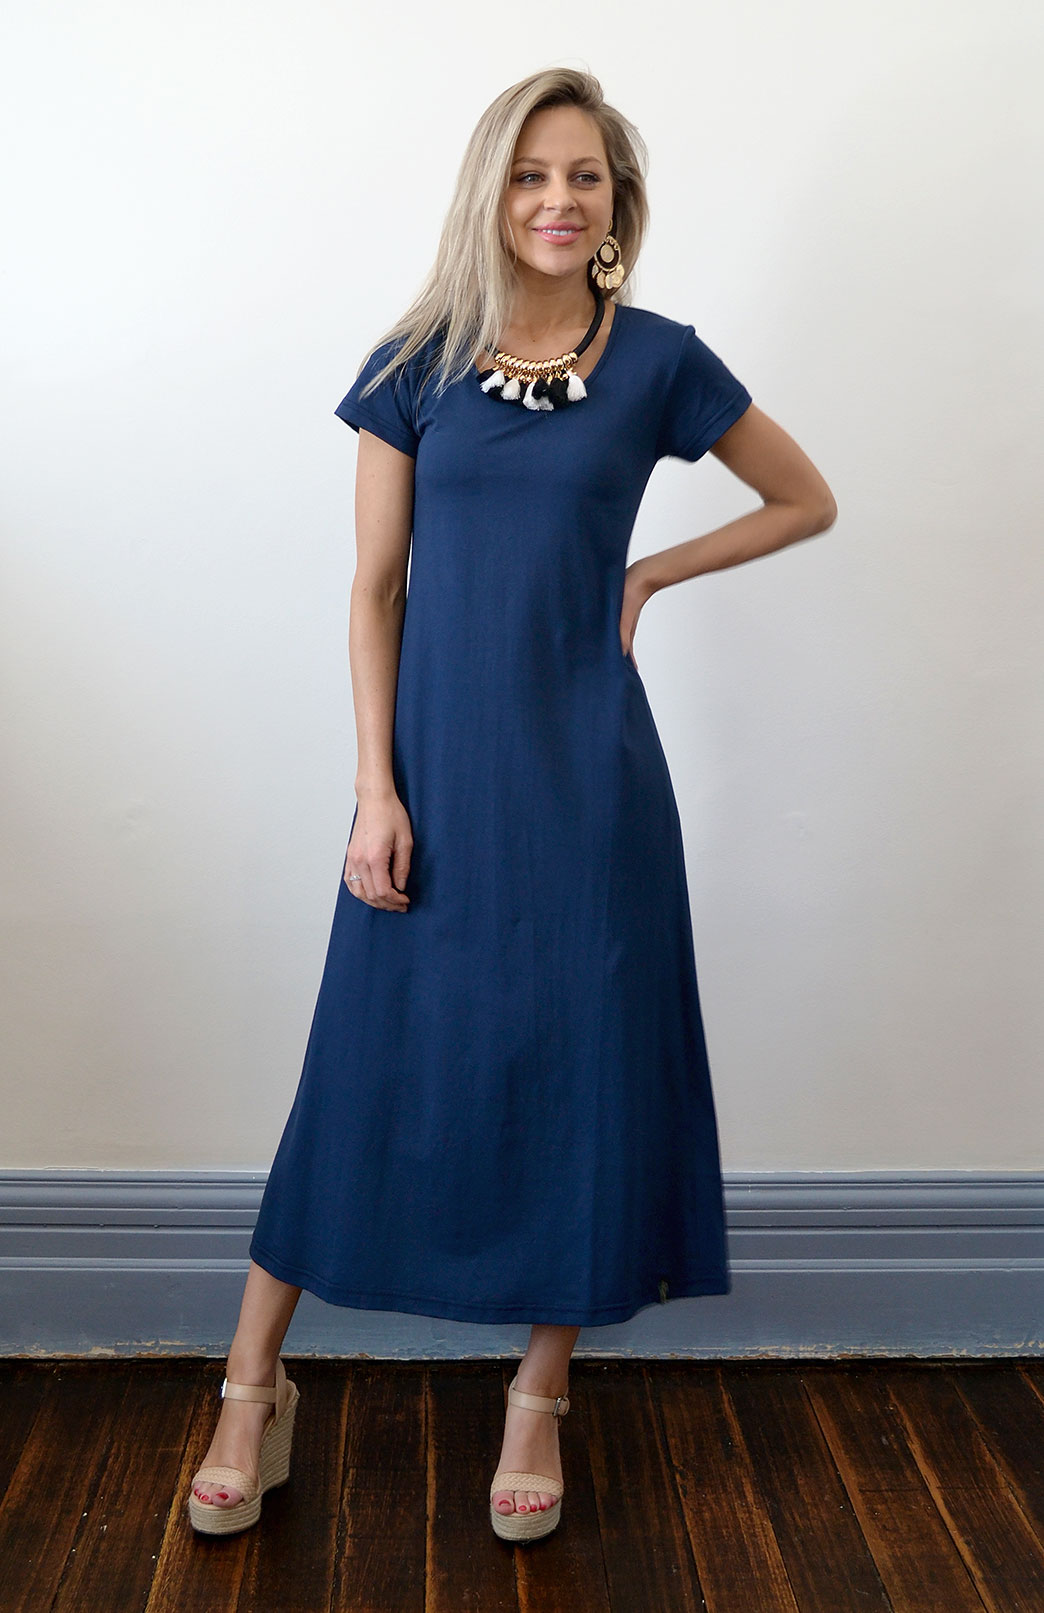 Organic Cotton T-Shirt Dress - Women's Indigo Organic Cotton Short Sleeve Dress - Smitten Merino Tasmania Australia